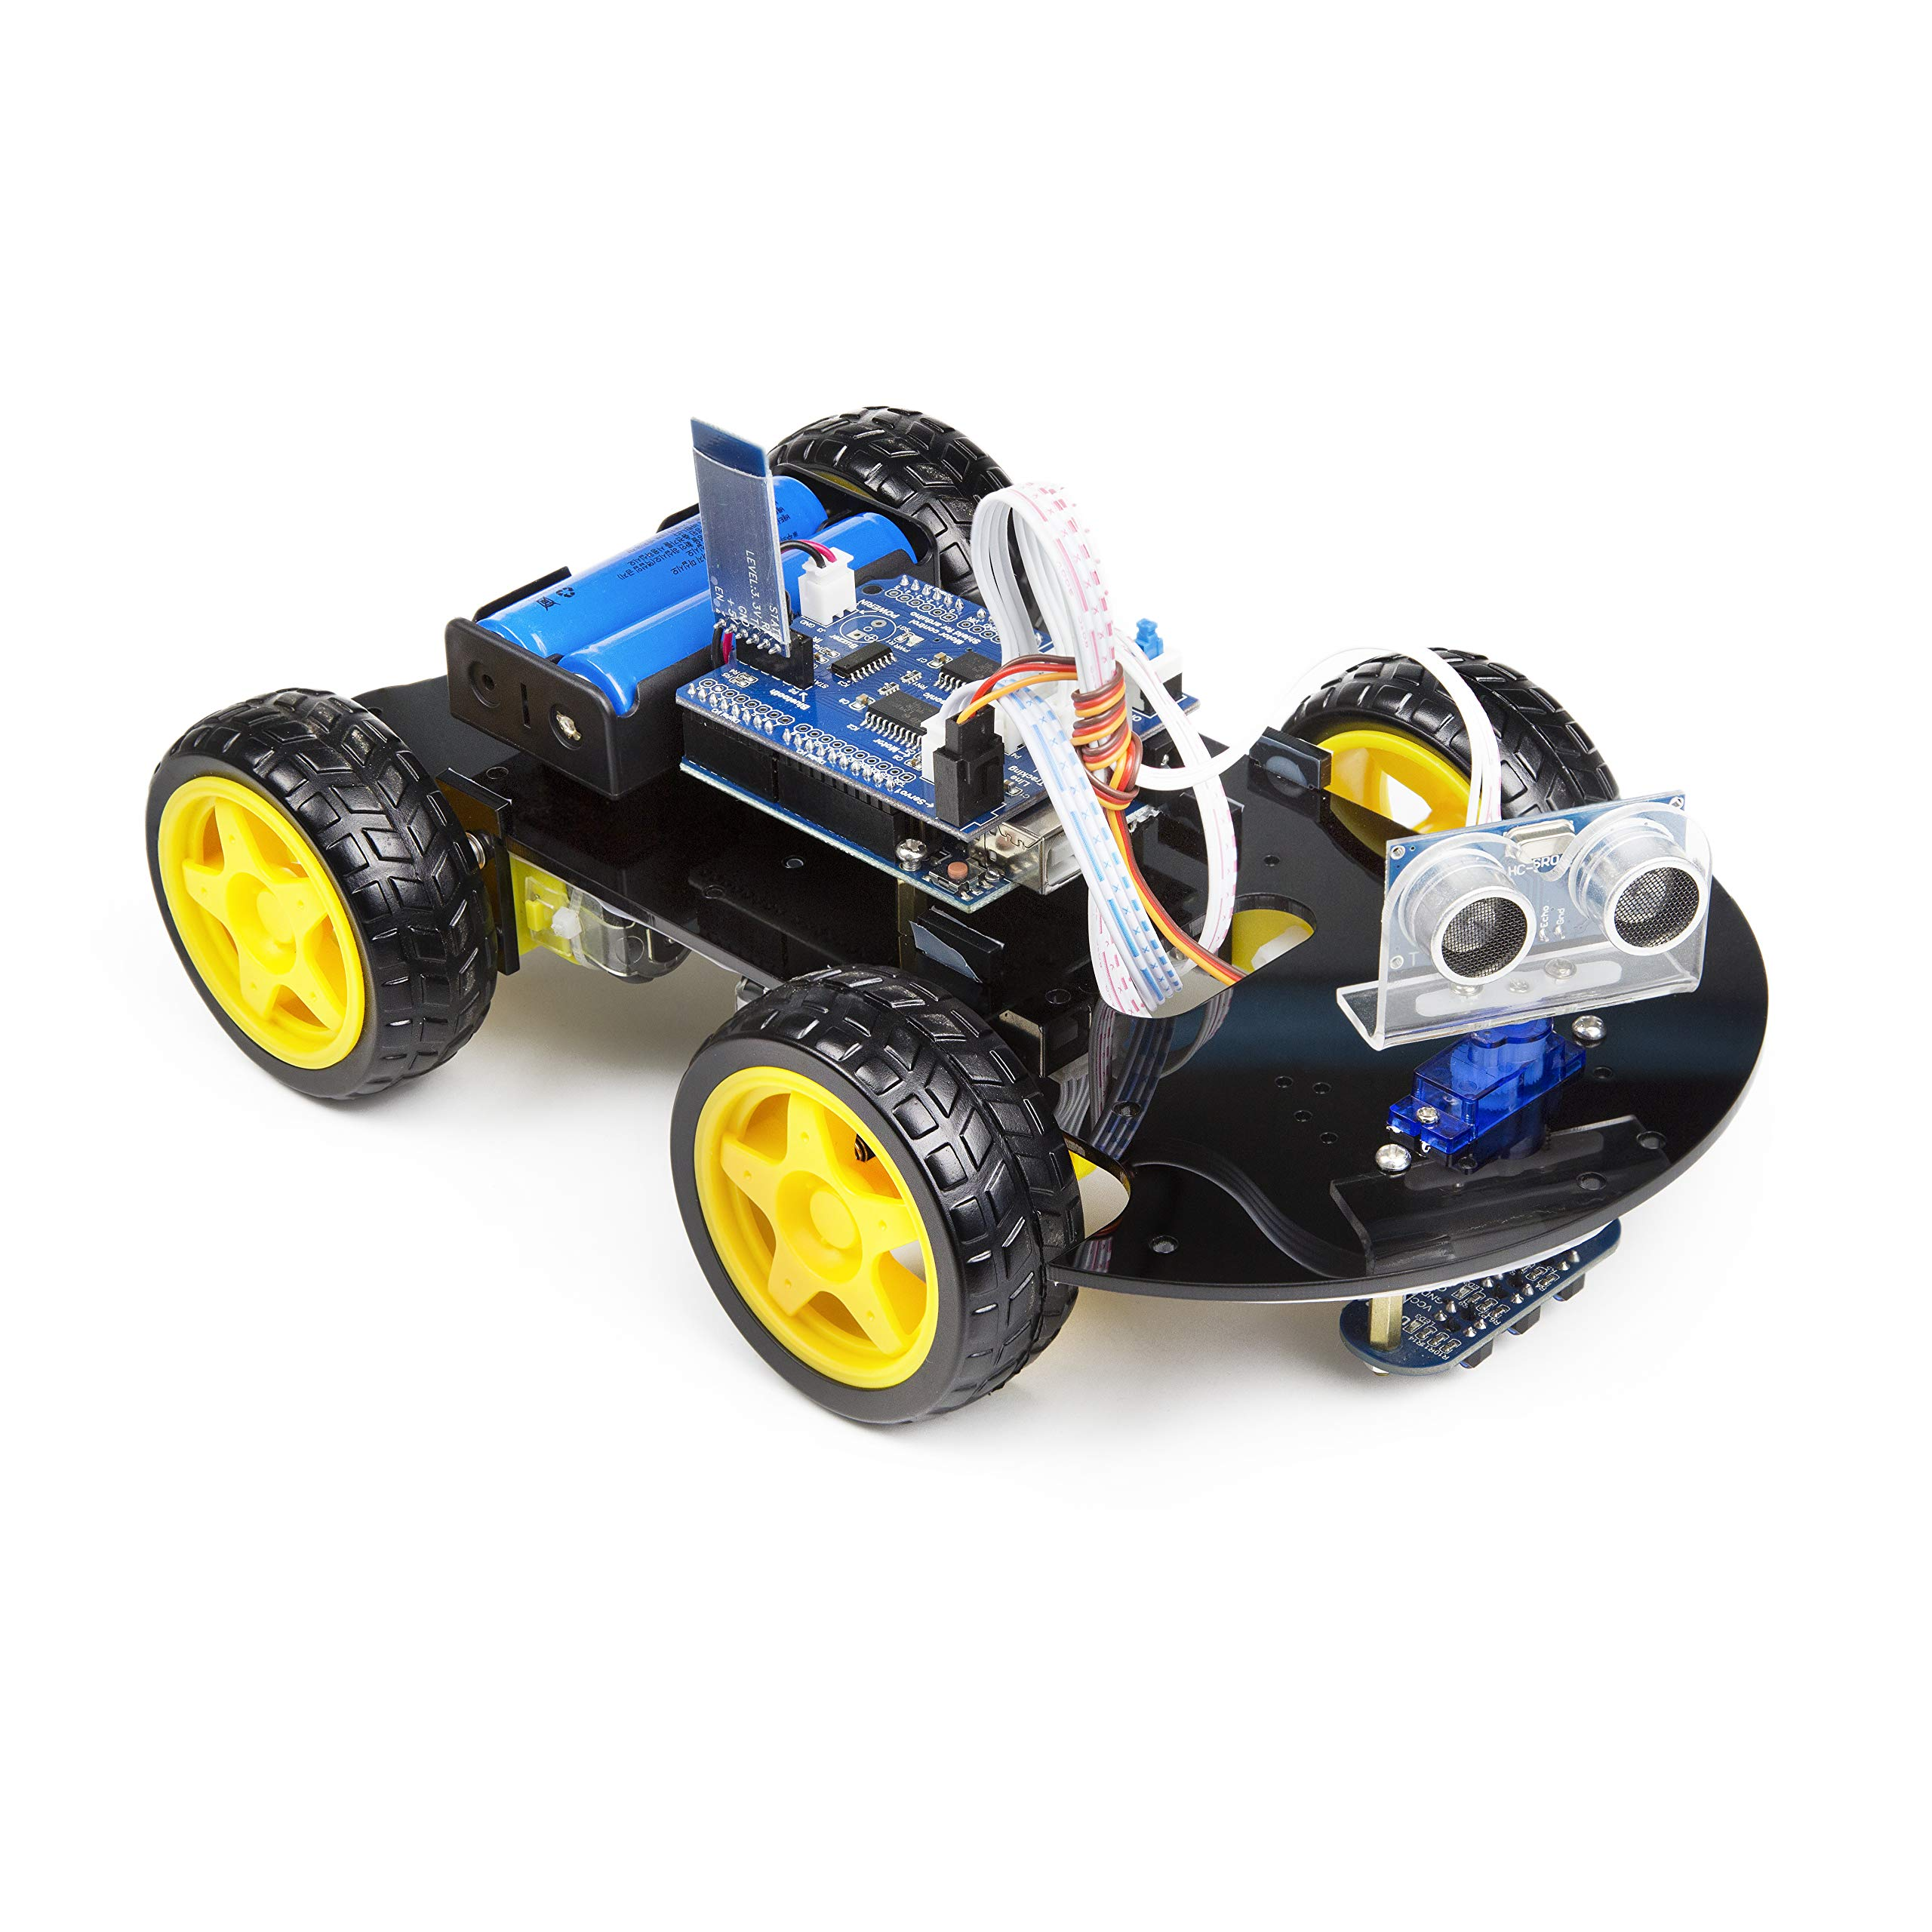 UCTRONICS Smart Bluetooth Robot Car Kit - UNO R3 for Arduino, Line Tracking, Ultrasonic Sensor, HC-05 Bluetooth, L293D Motor Shield, IR Remote Control, Mobile APP - Charger Included